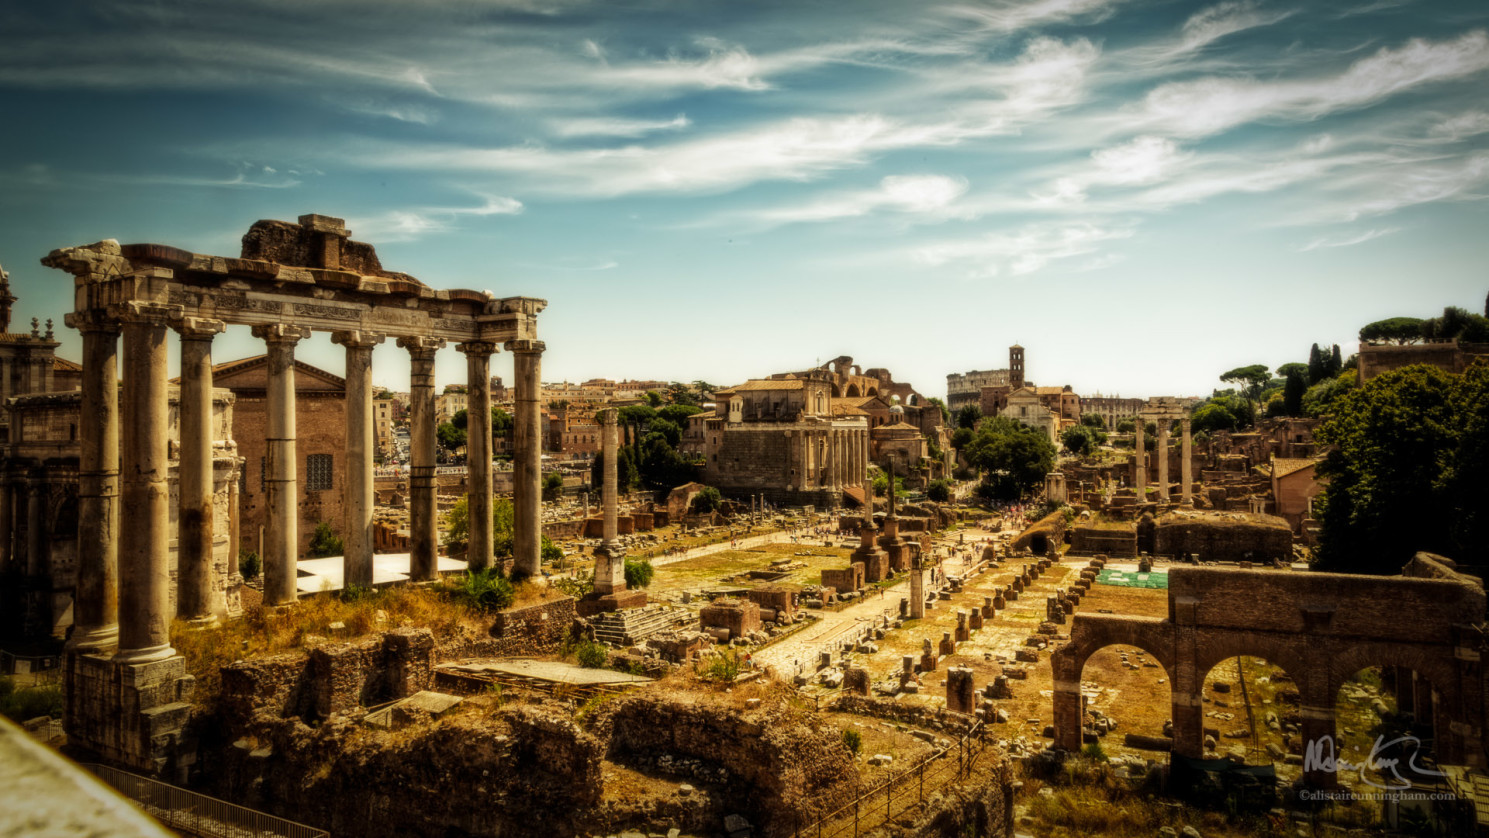 The Golden Roman Forum